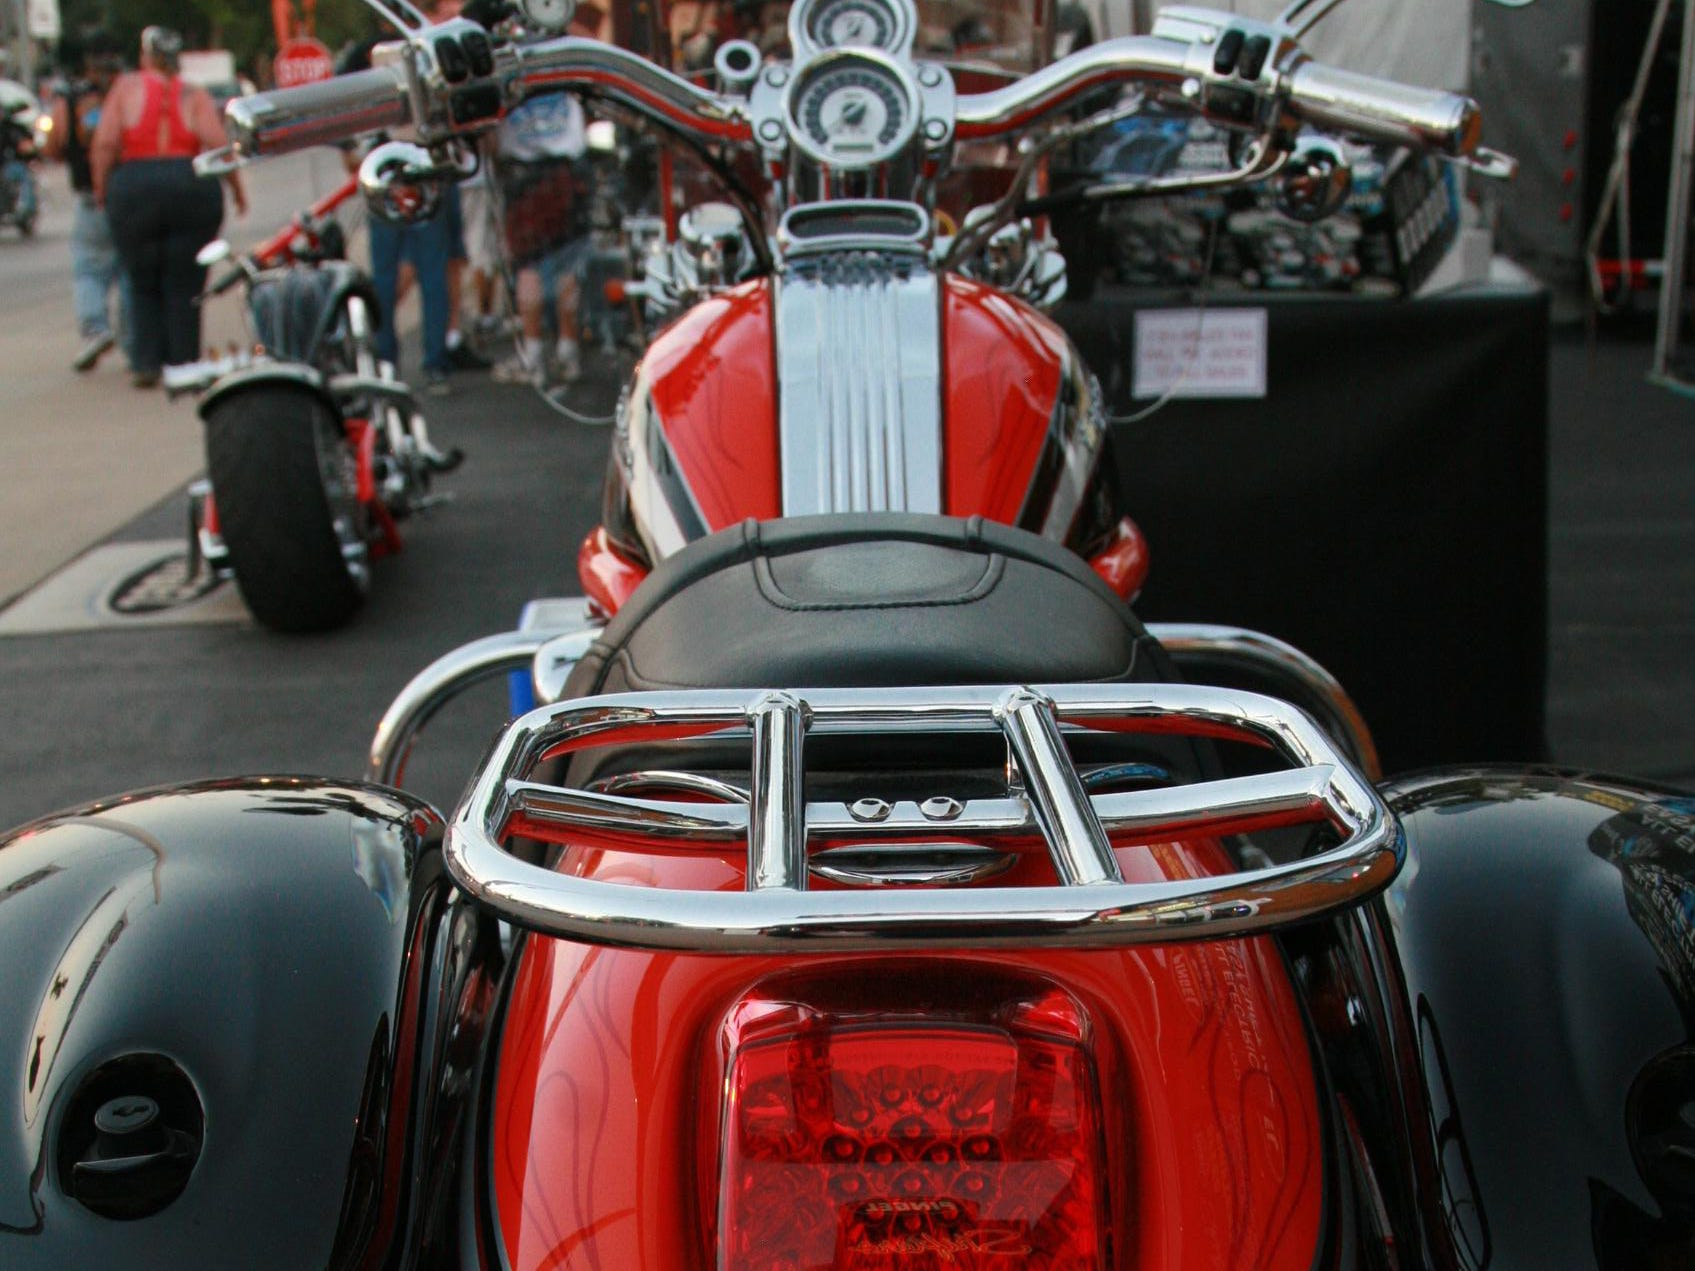 2012: A large number of riders from Wisconsin, home of Harley-Davidson, make the annual trip to Sturgis.